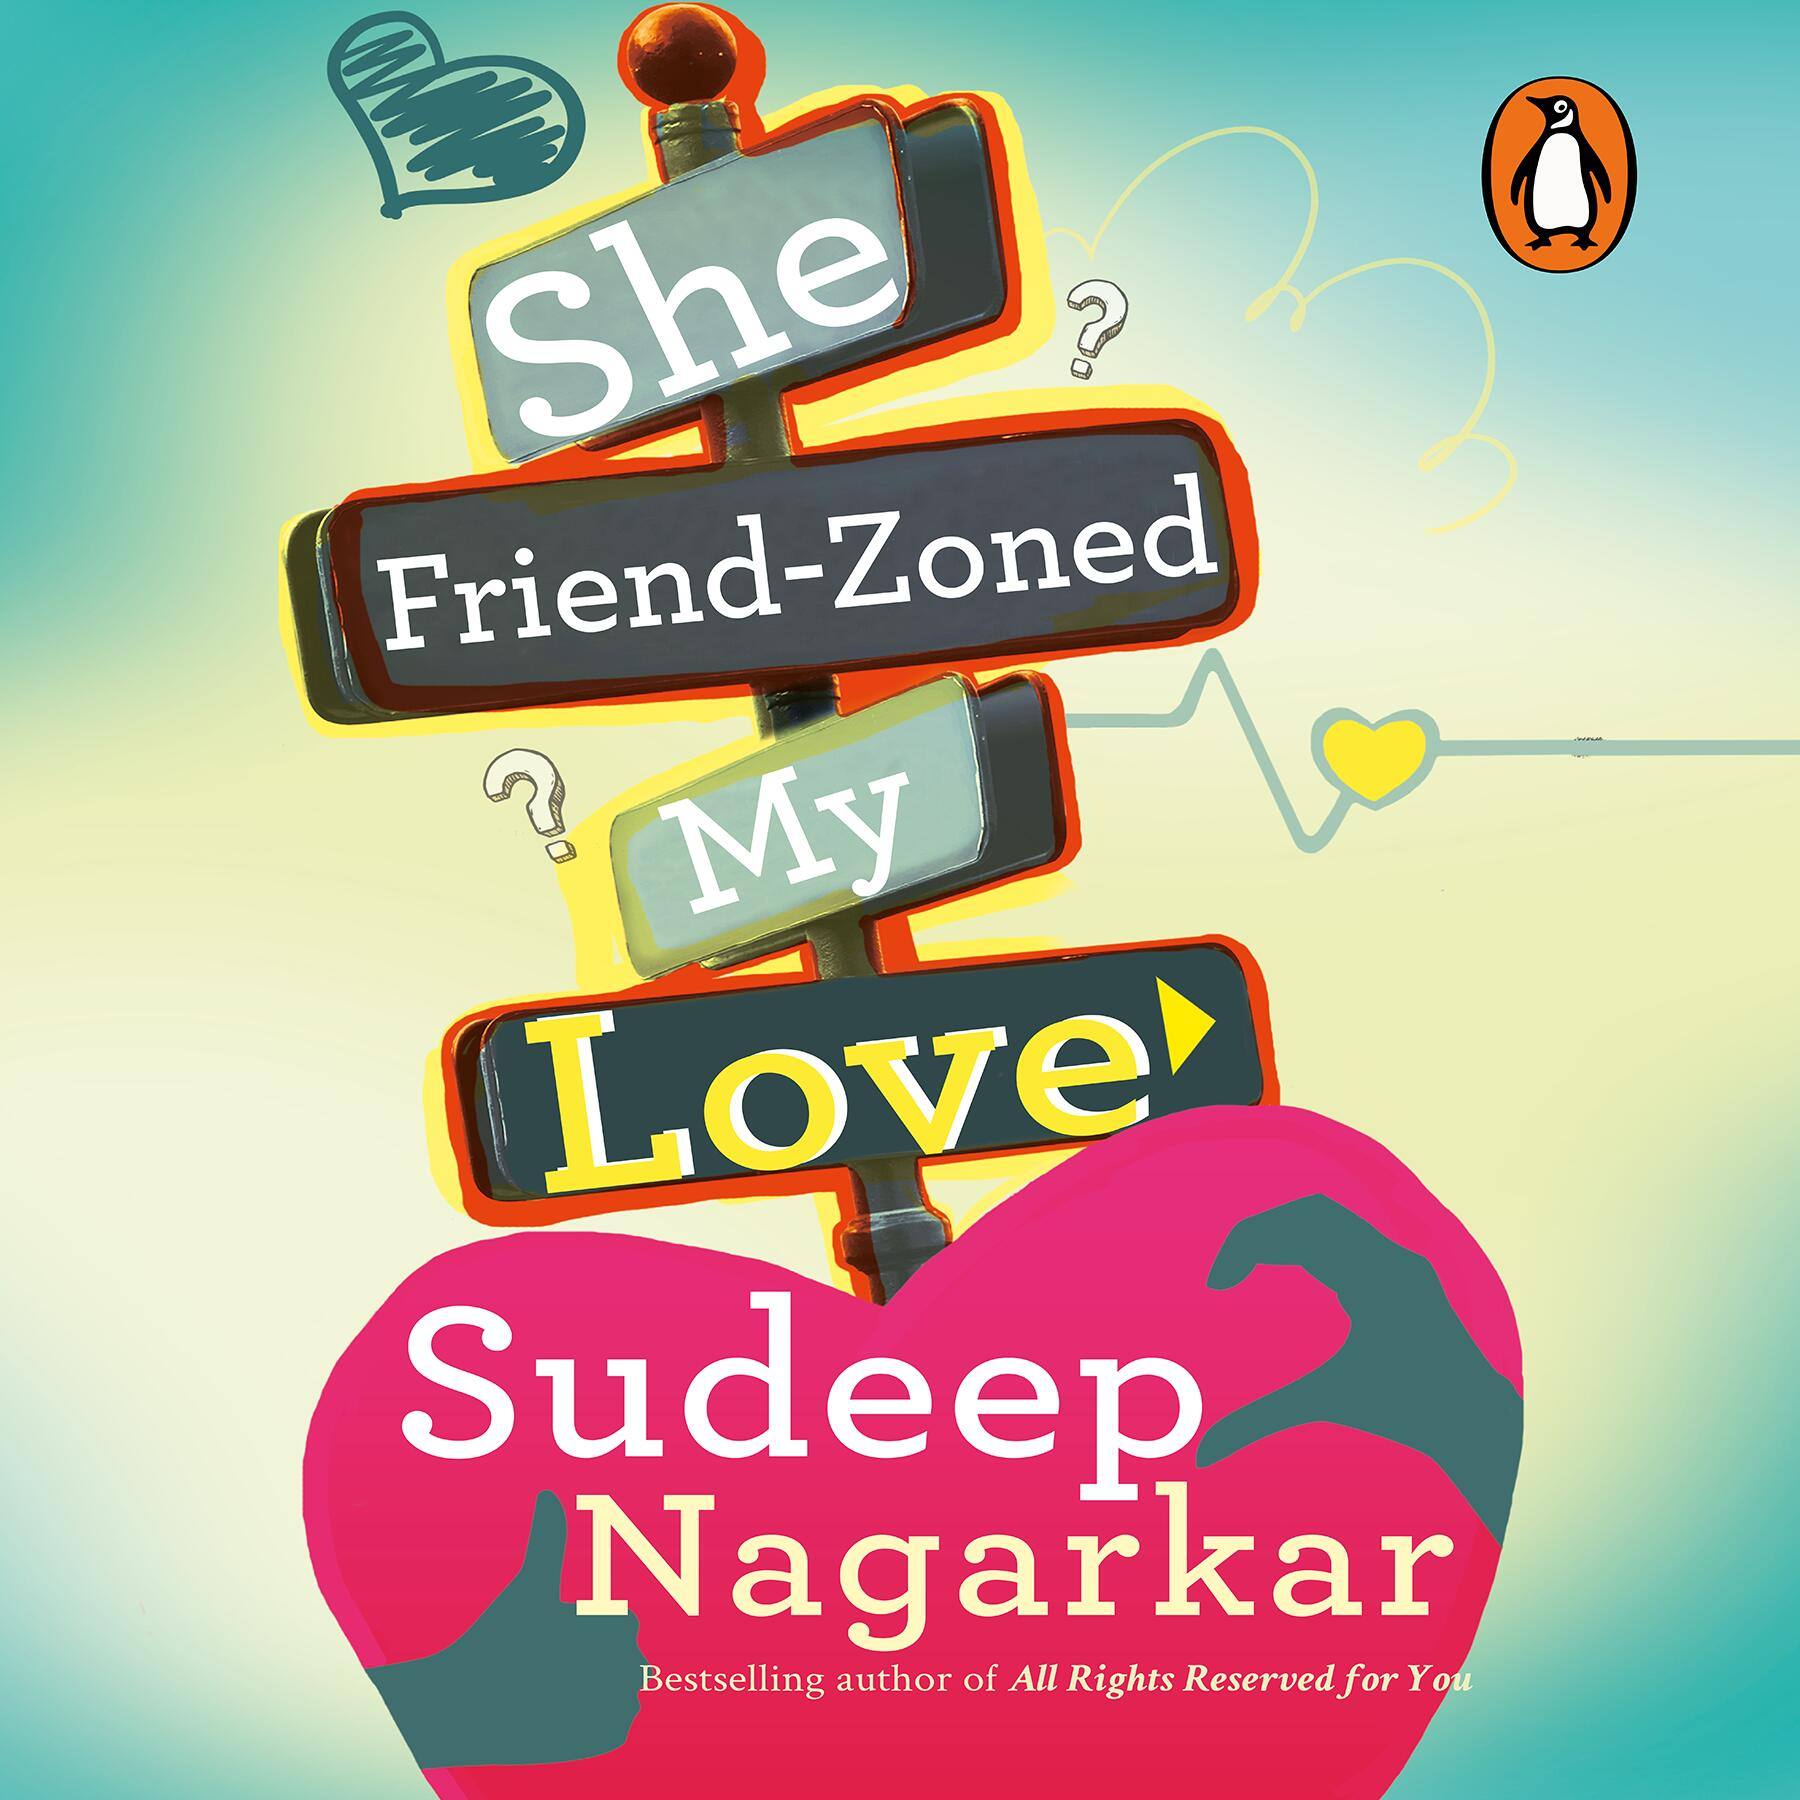 She Friend-Zoned My Love